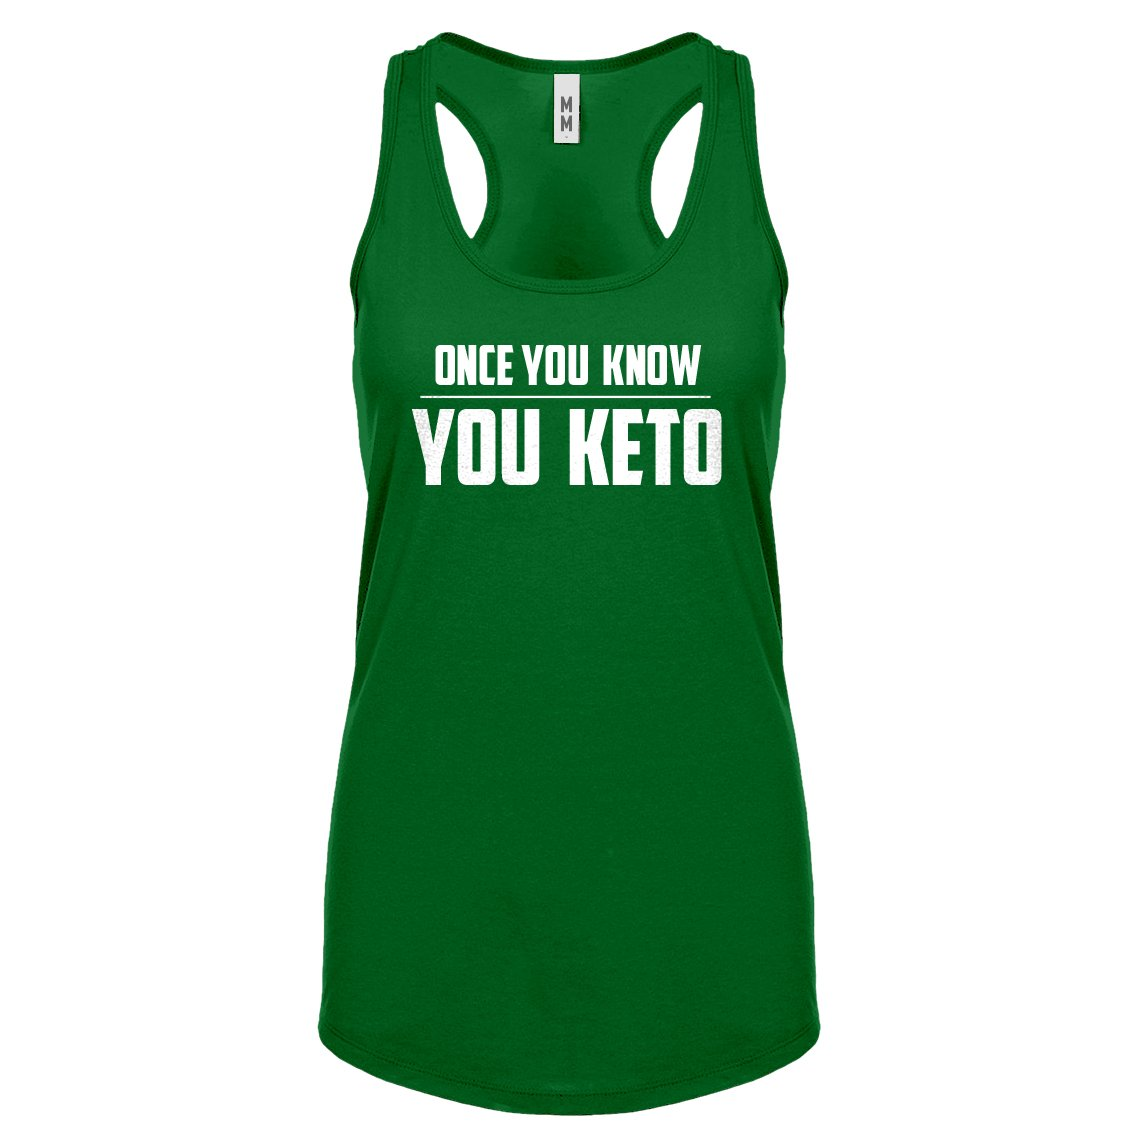 Indica Plateau Womens Once You Know, You Keto Racerback Tank Top 3272-R